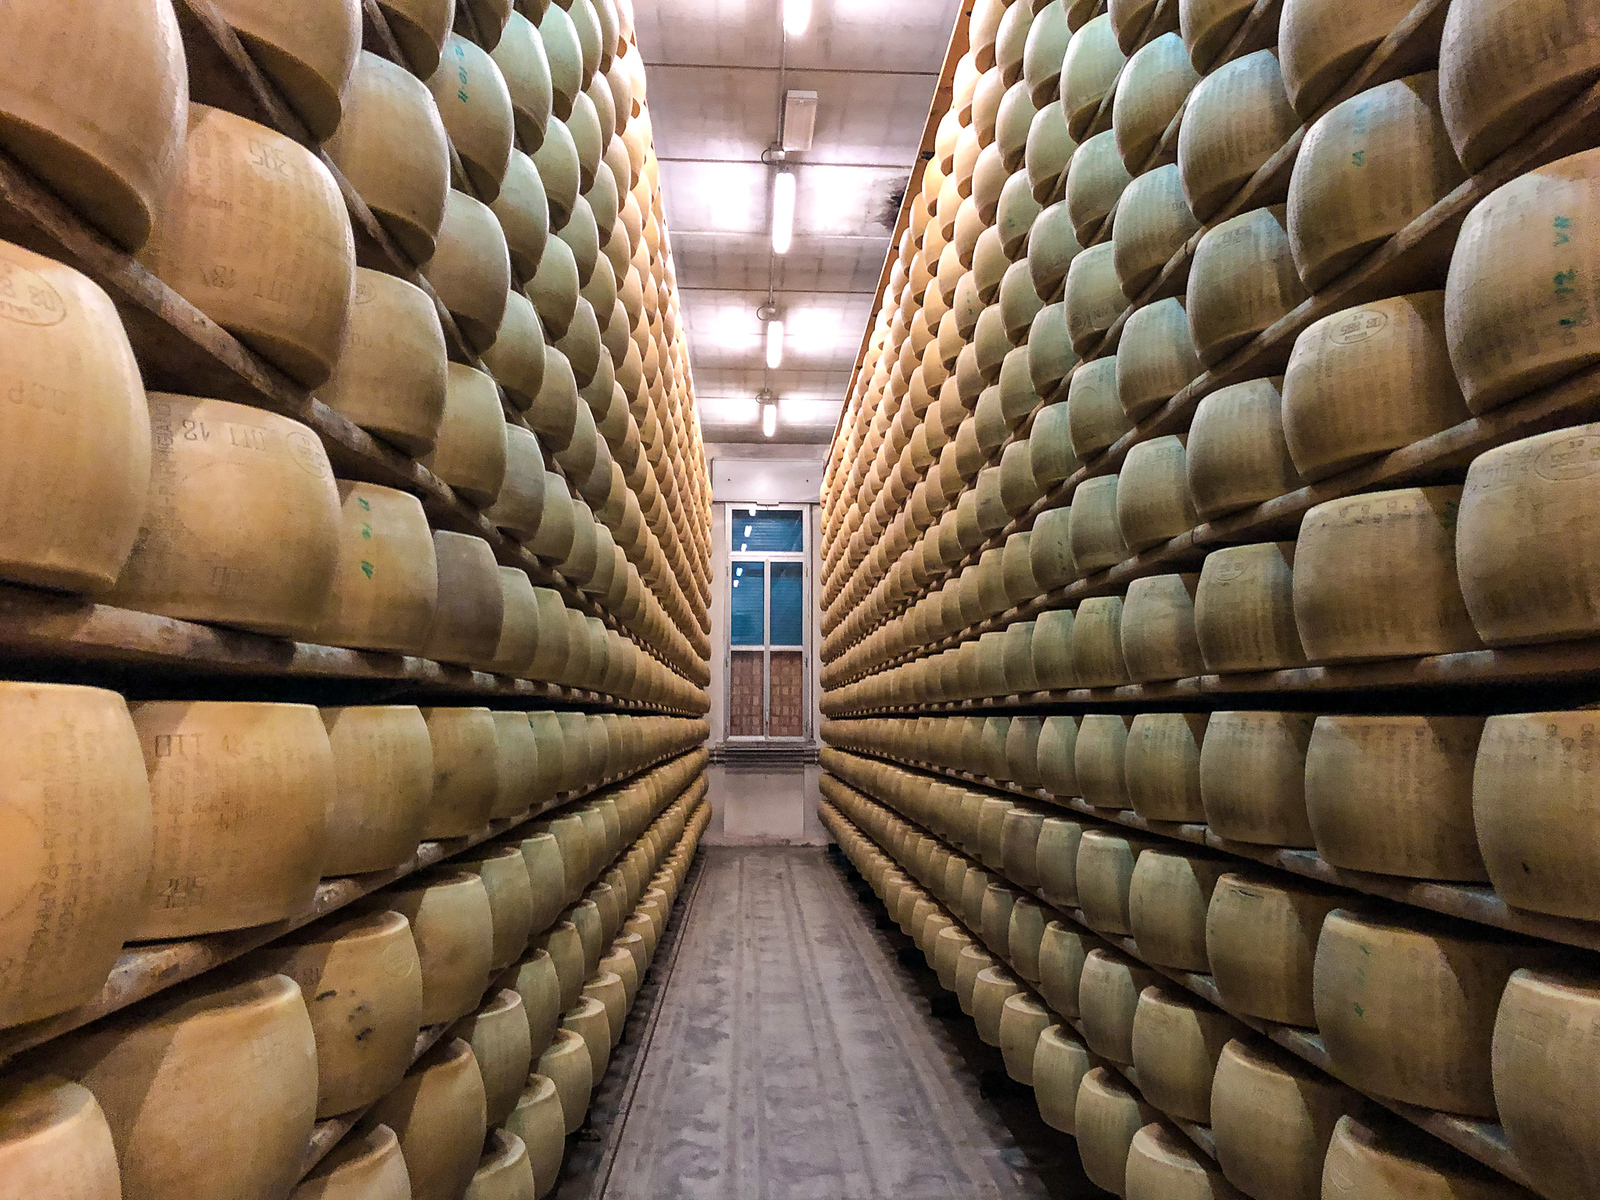 Visiting parma cheese factory is the best time